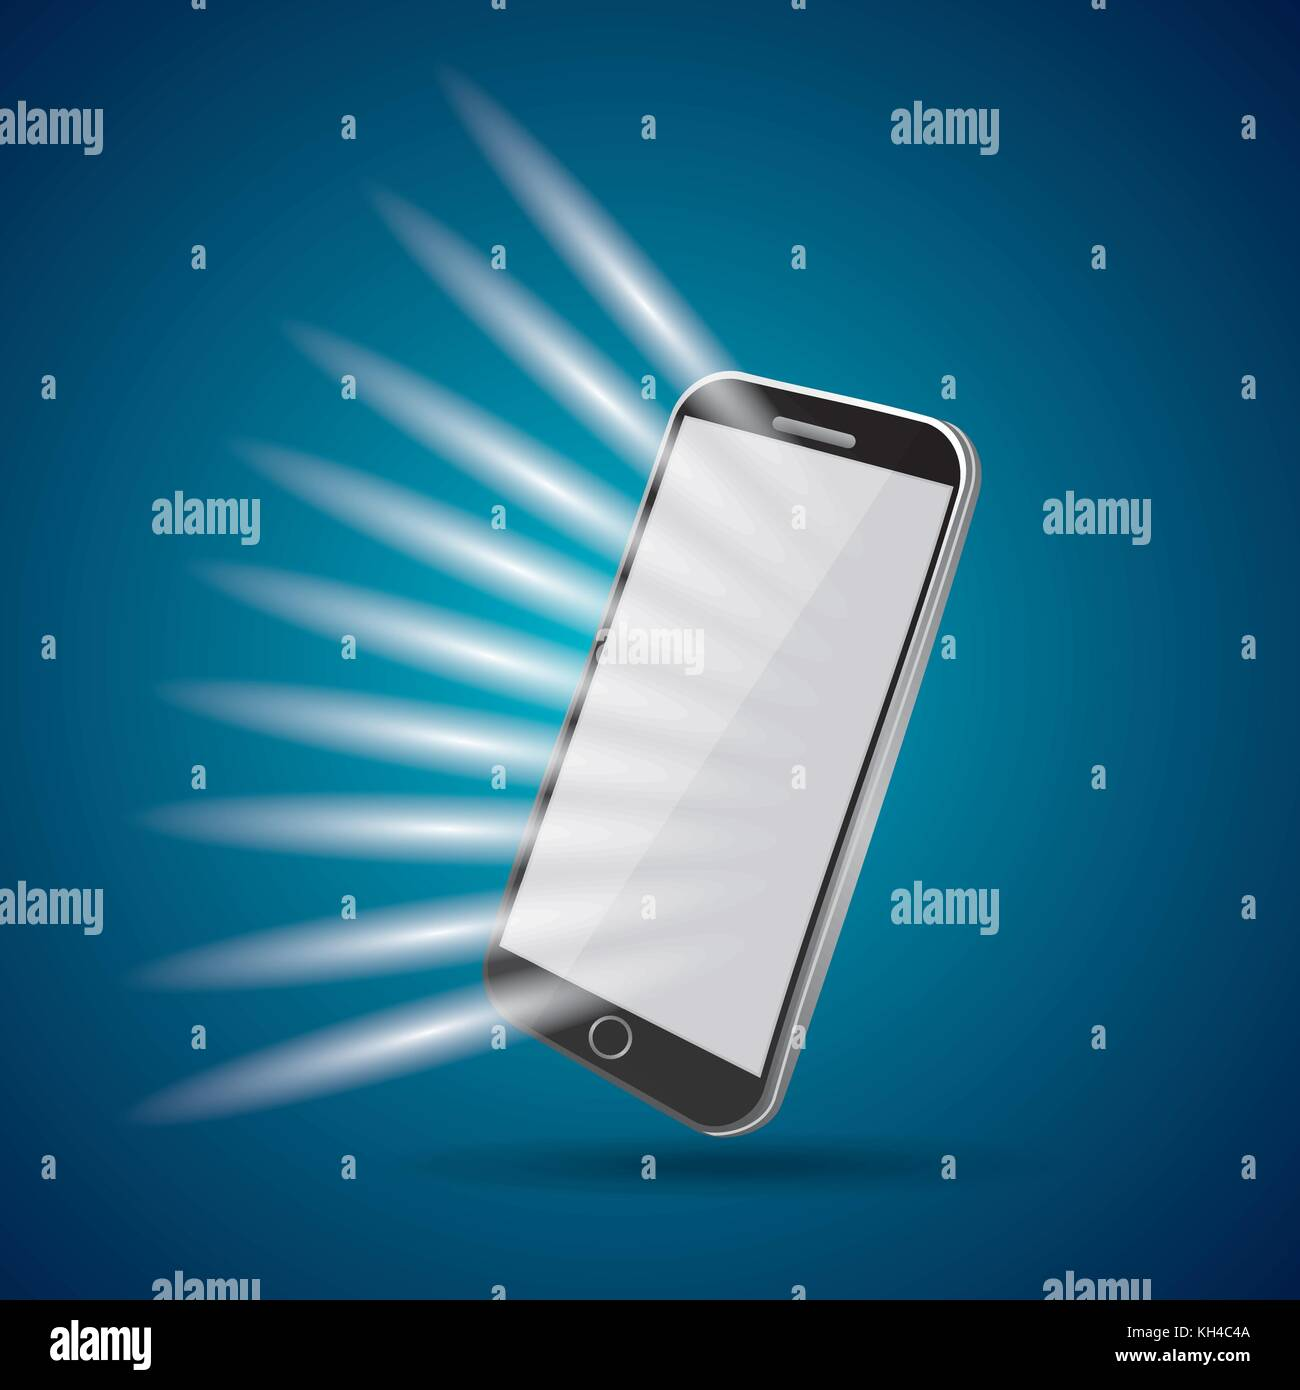 mobile phone with light abstracted screen on a white background - Stock Image